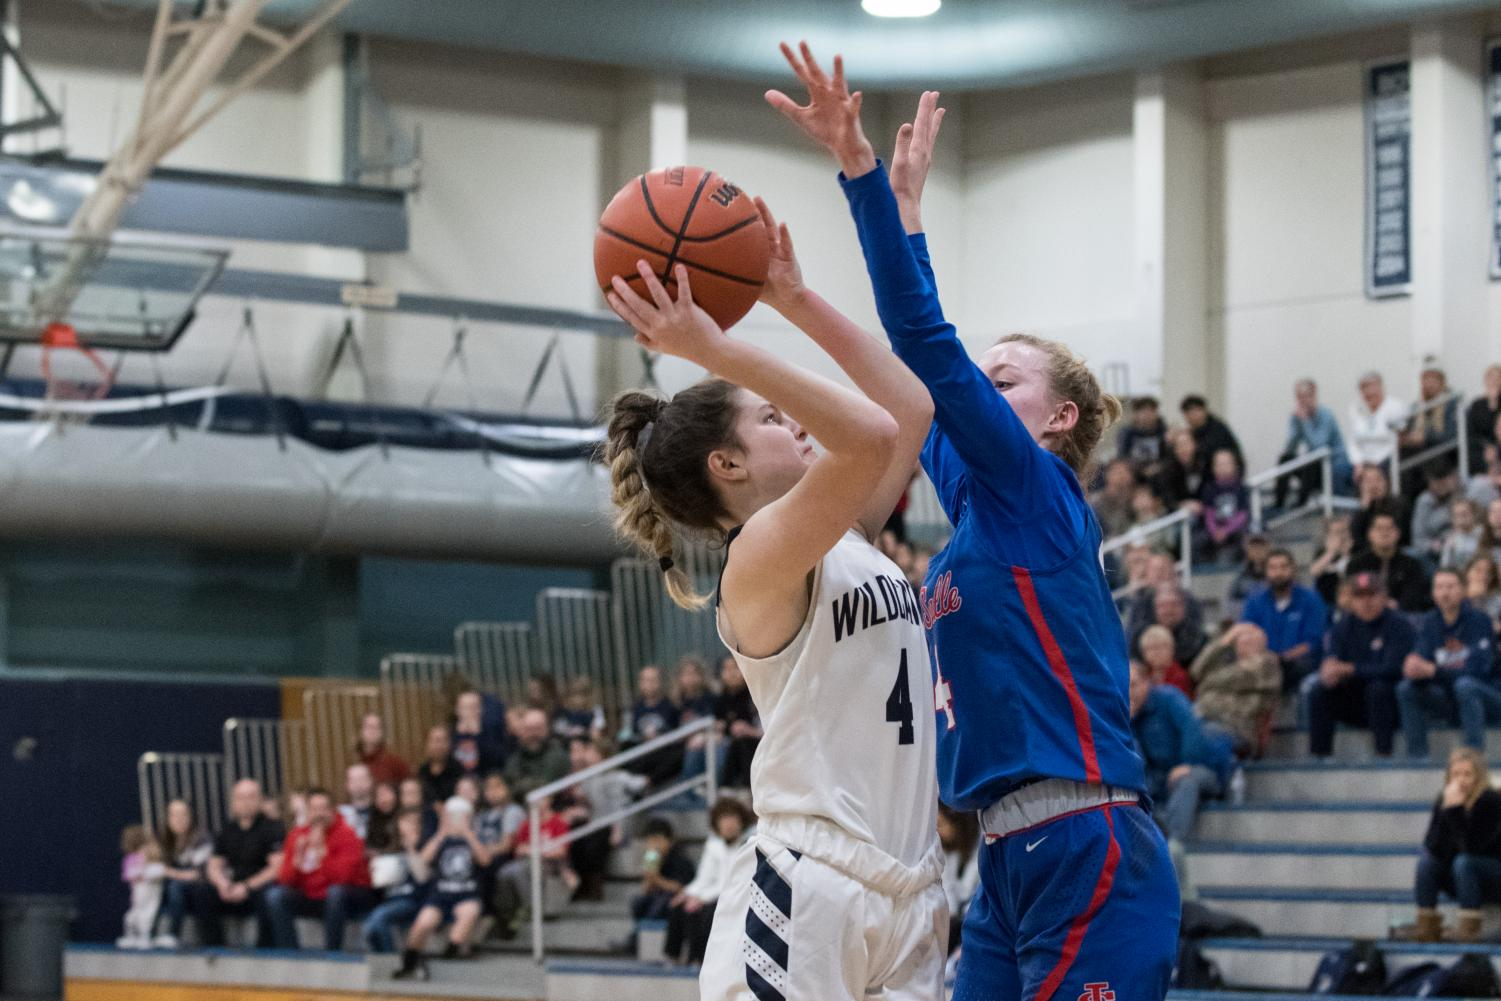 Girls fall to league rival La Salle